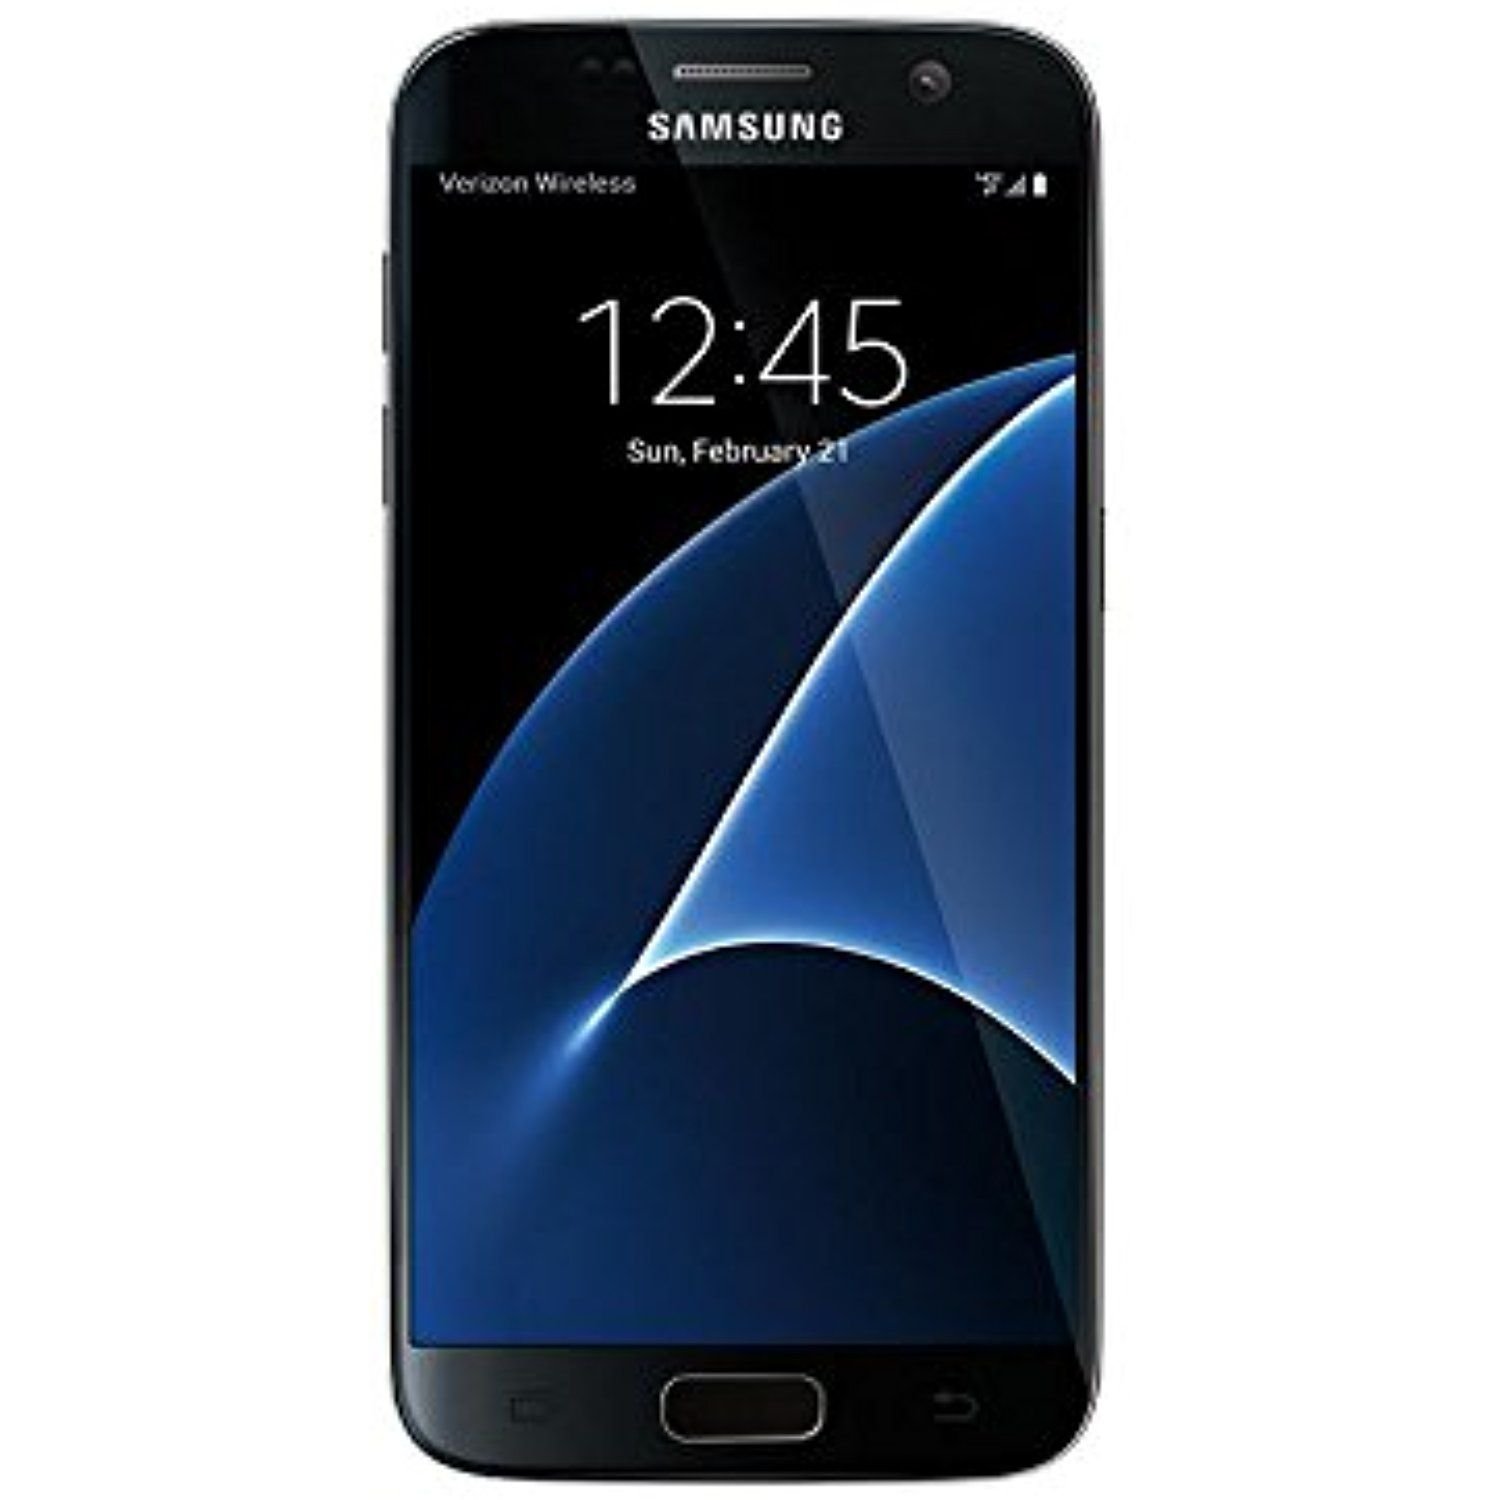 Samsung Galaxy S7 G930V 32GB Verizon Phone Unlocked Black Oynx Visit the image